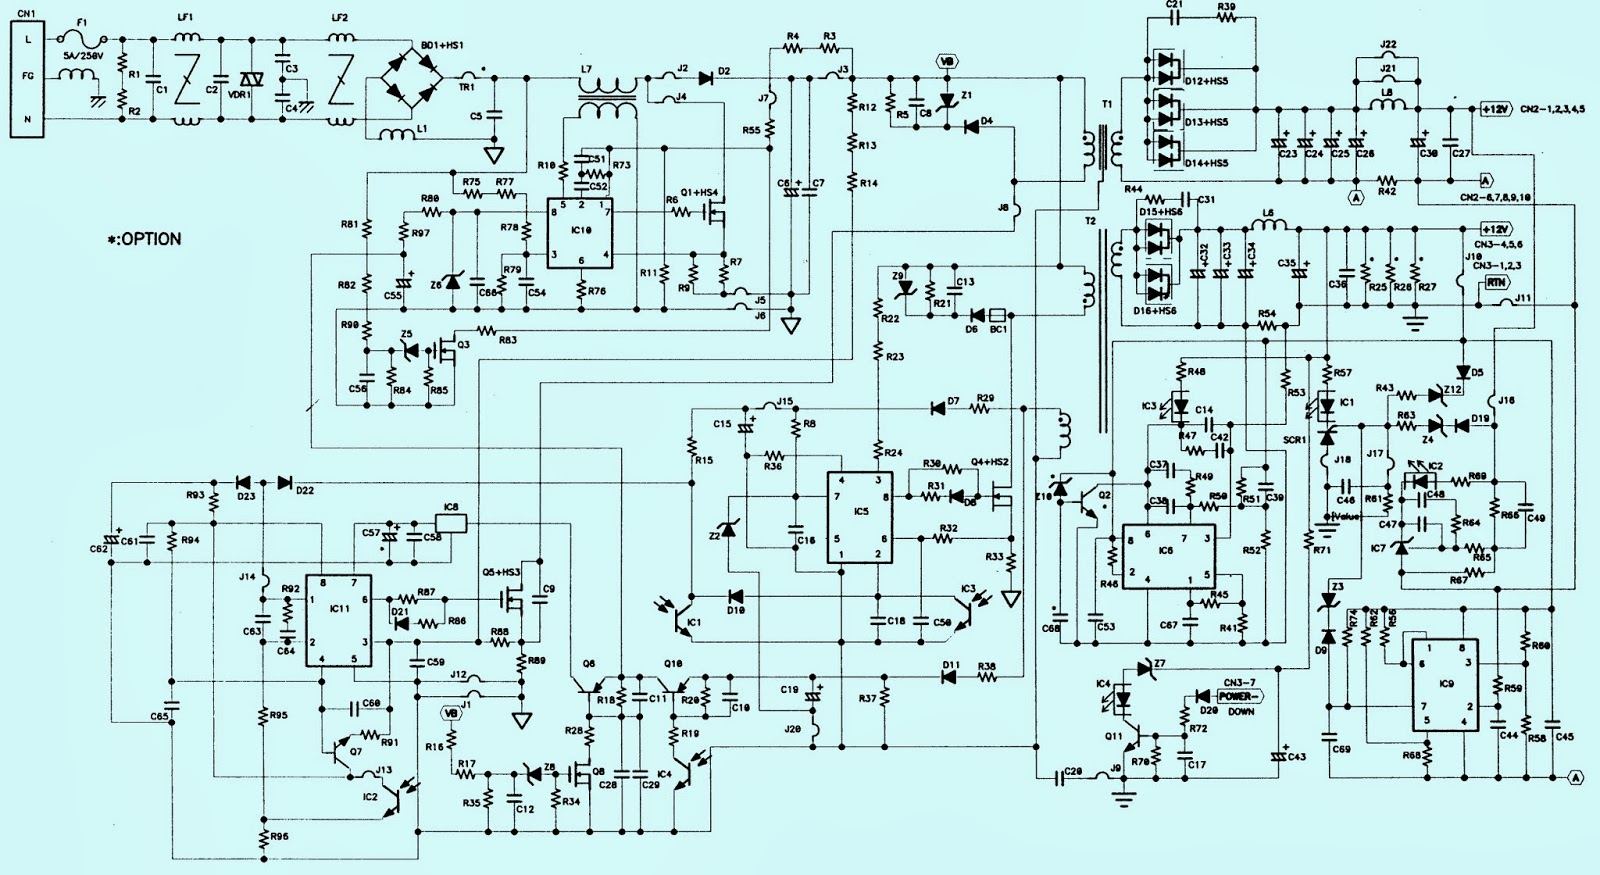 untitled.bmp toshiba 27wl46 power supply [smps] schematic (circuit diagram toshiba motor wiring diagram at edmiracle.co